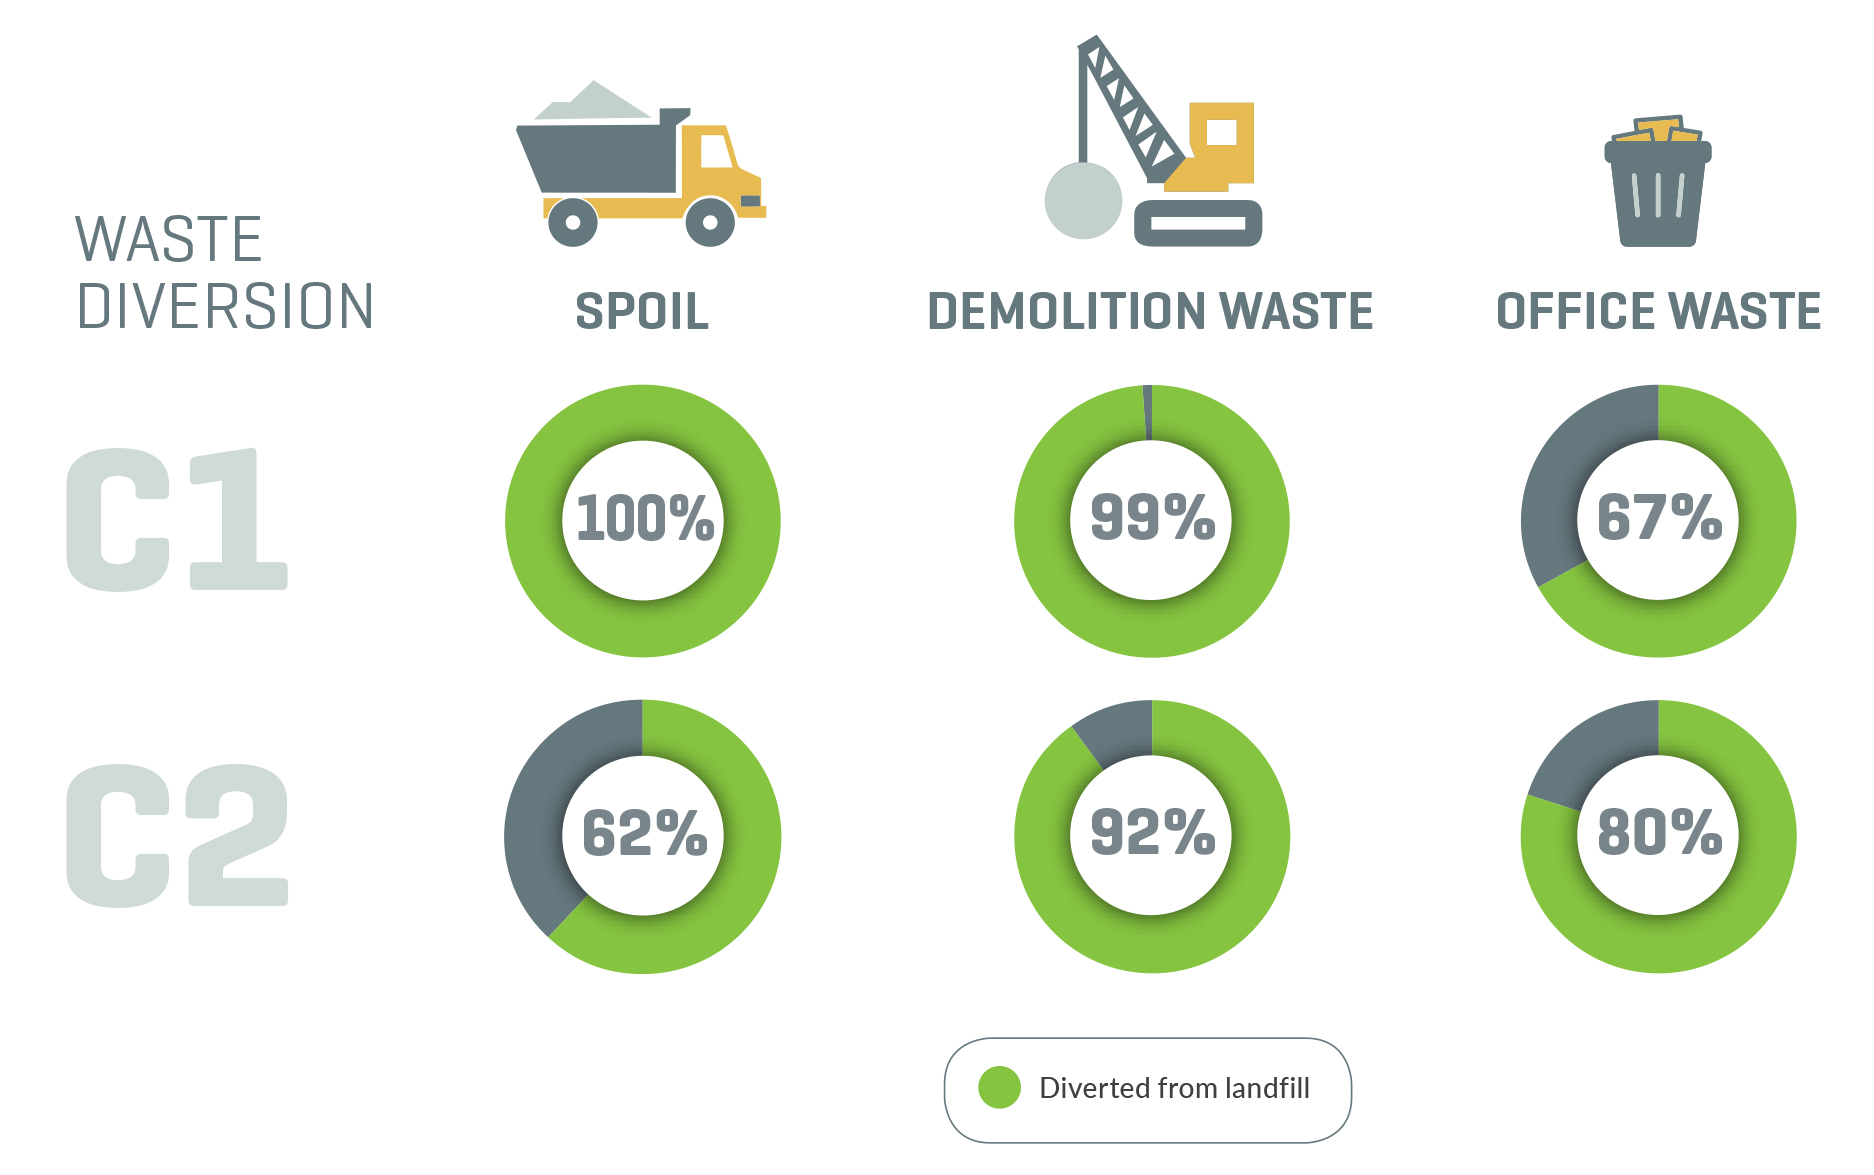 Waste diversion graph C1 and C2